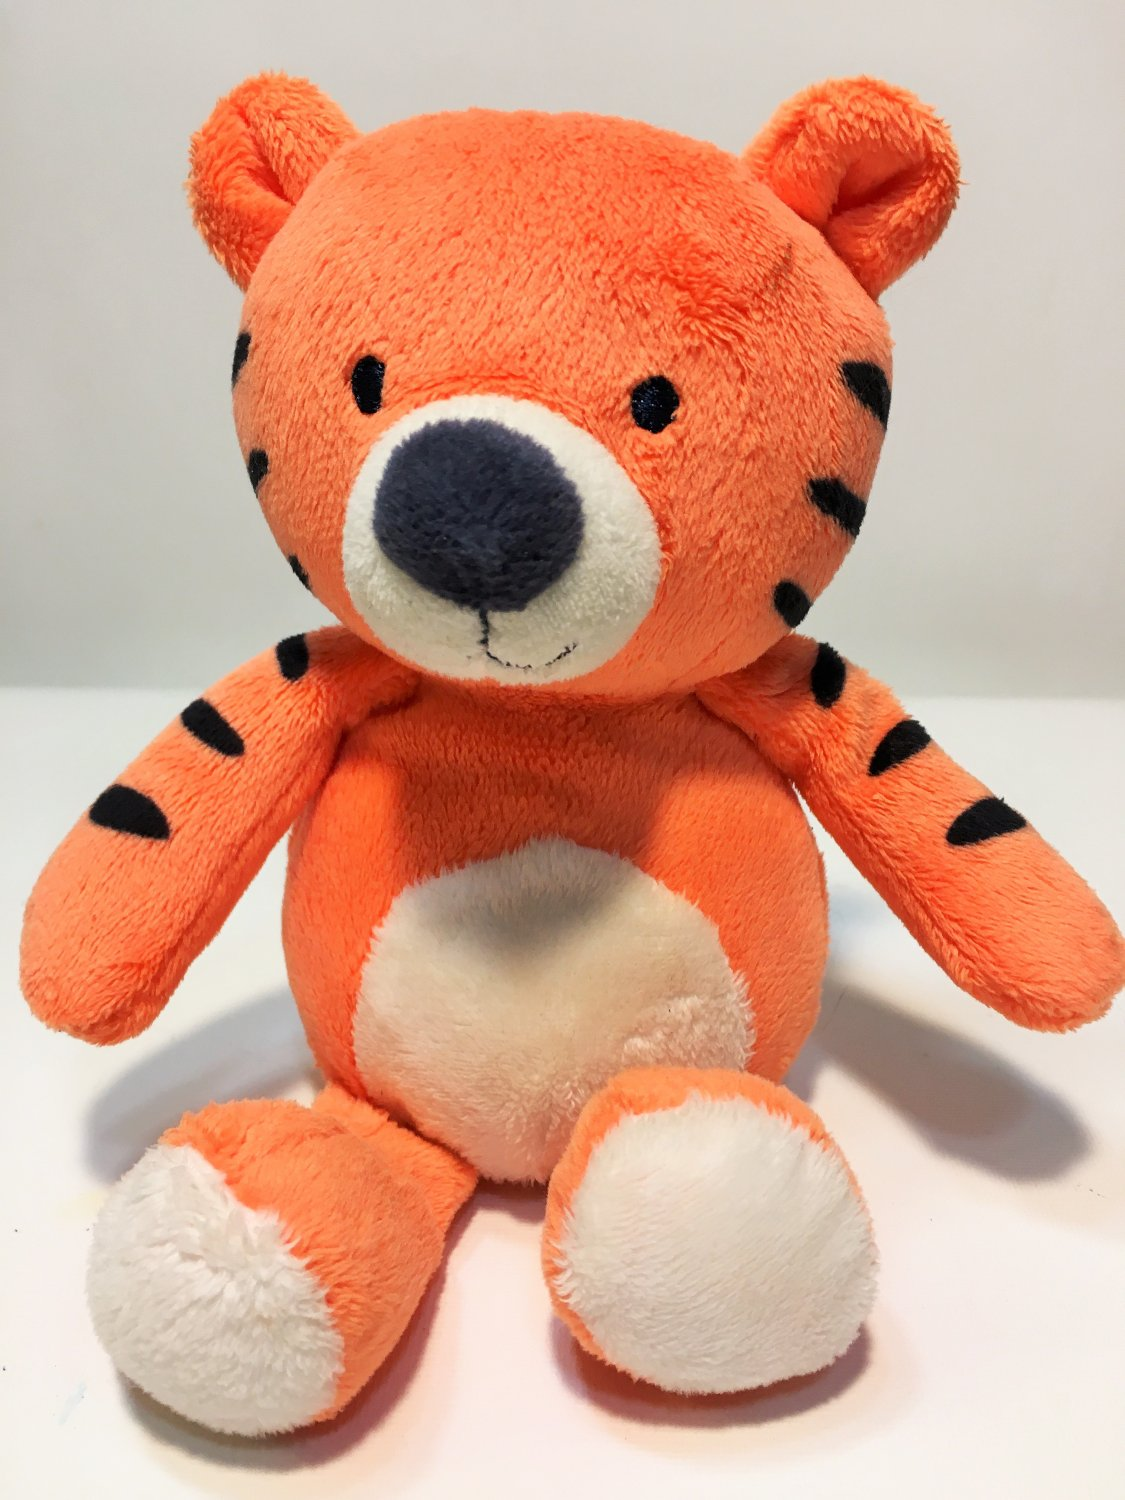 Carter's Tiger Plush Orange White Rattle Just One You Stuffed Animal Baby Toy